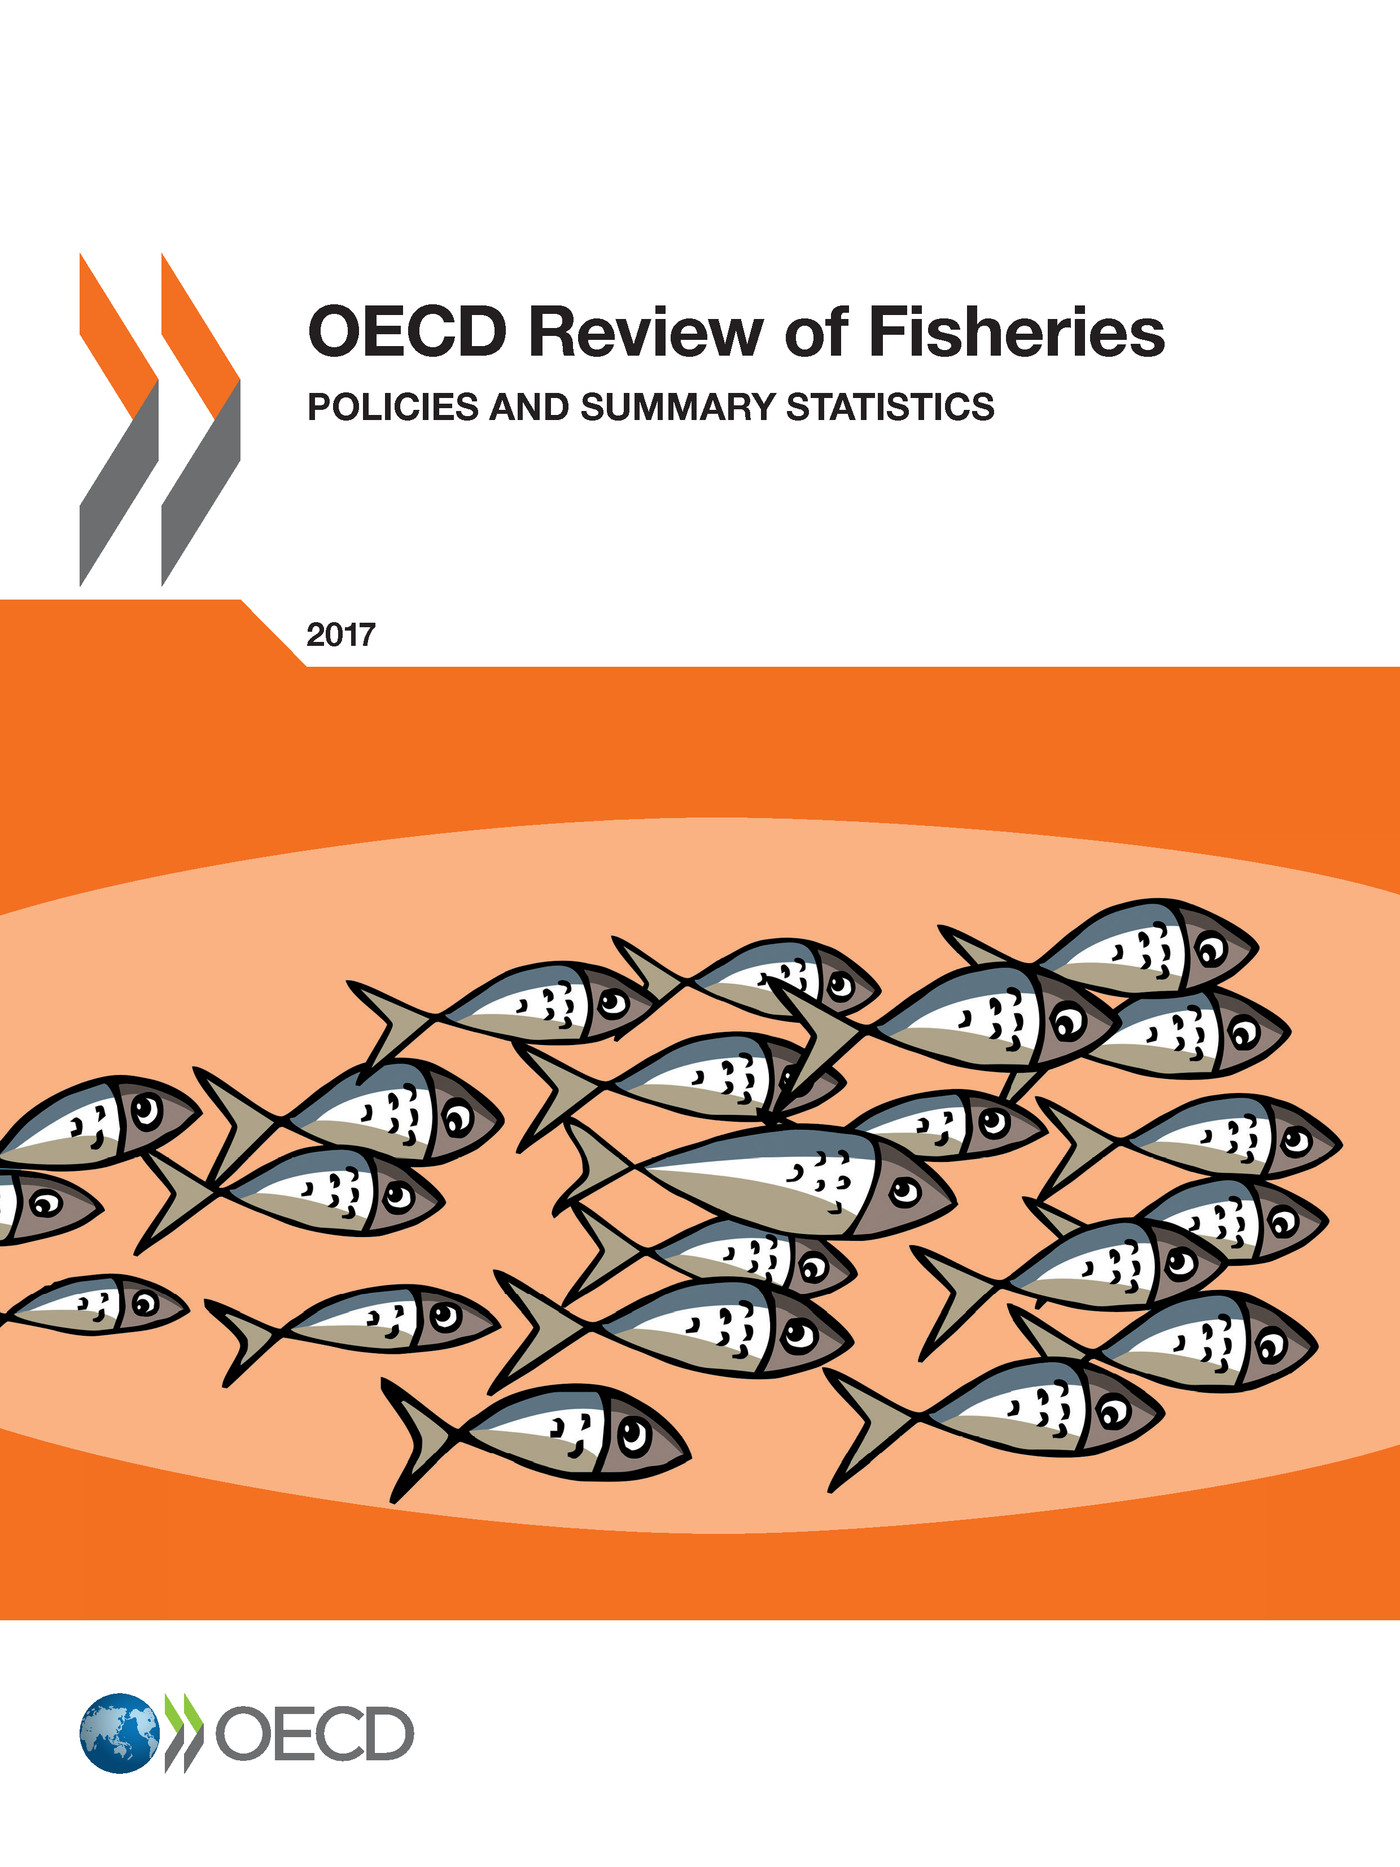 OECD Review of Fisheries: Policies and Summary Statistics 2017 De  Collectif - OCDE / OECD